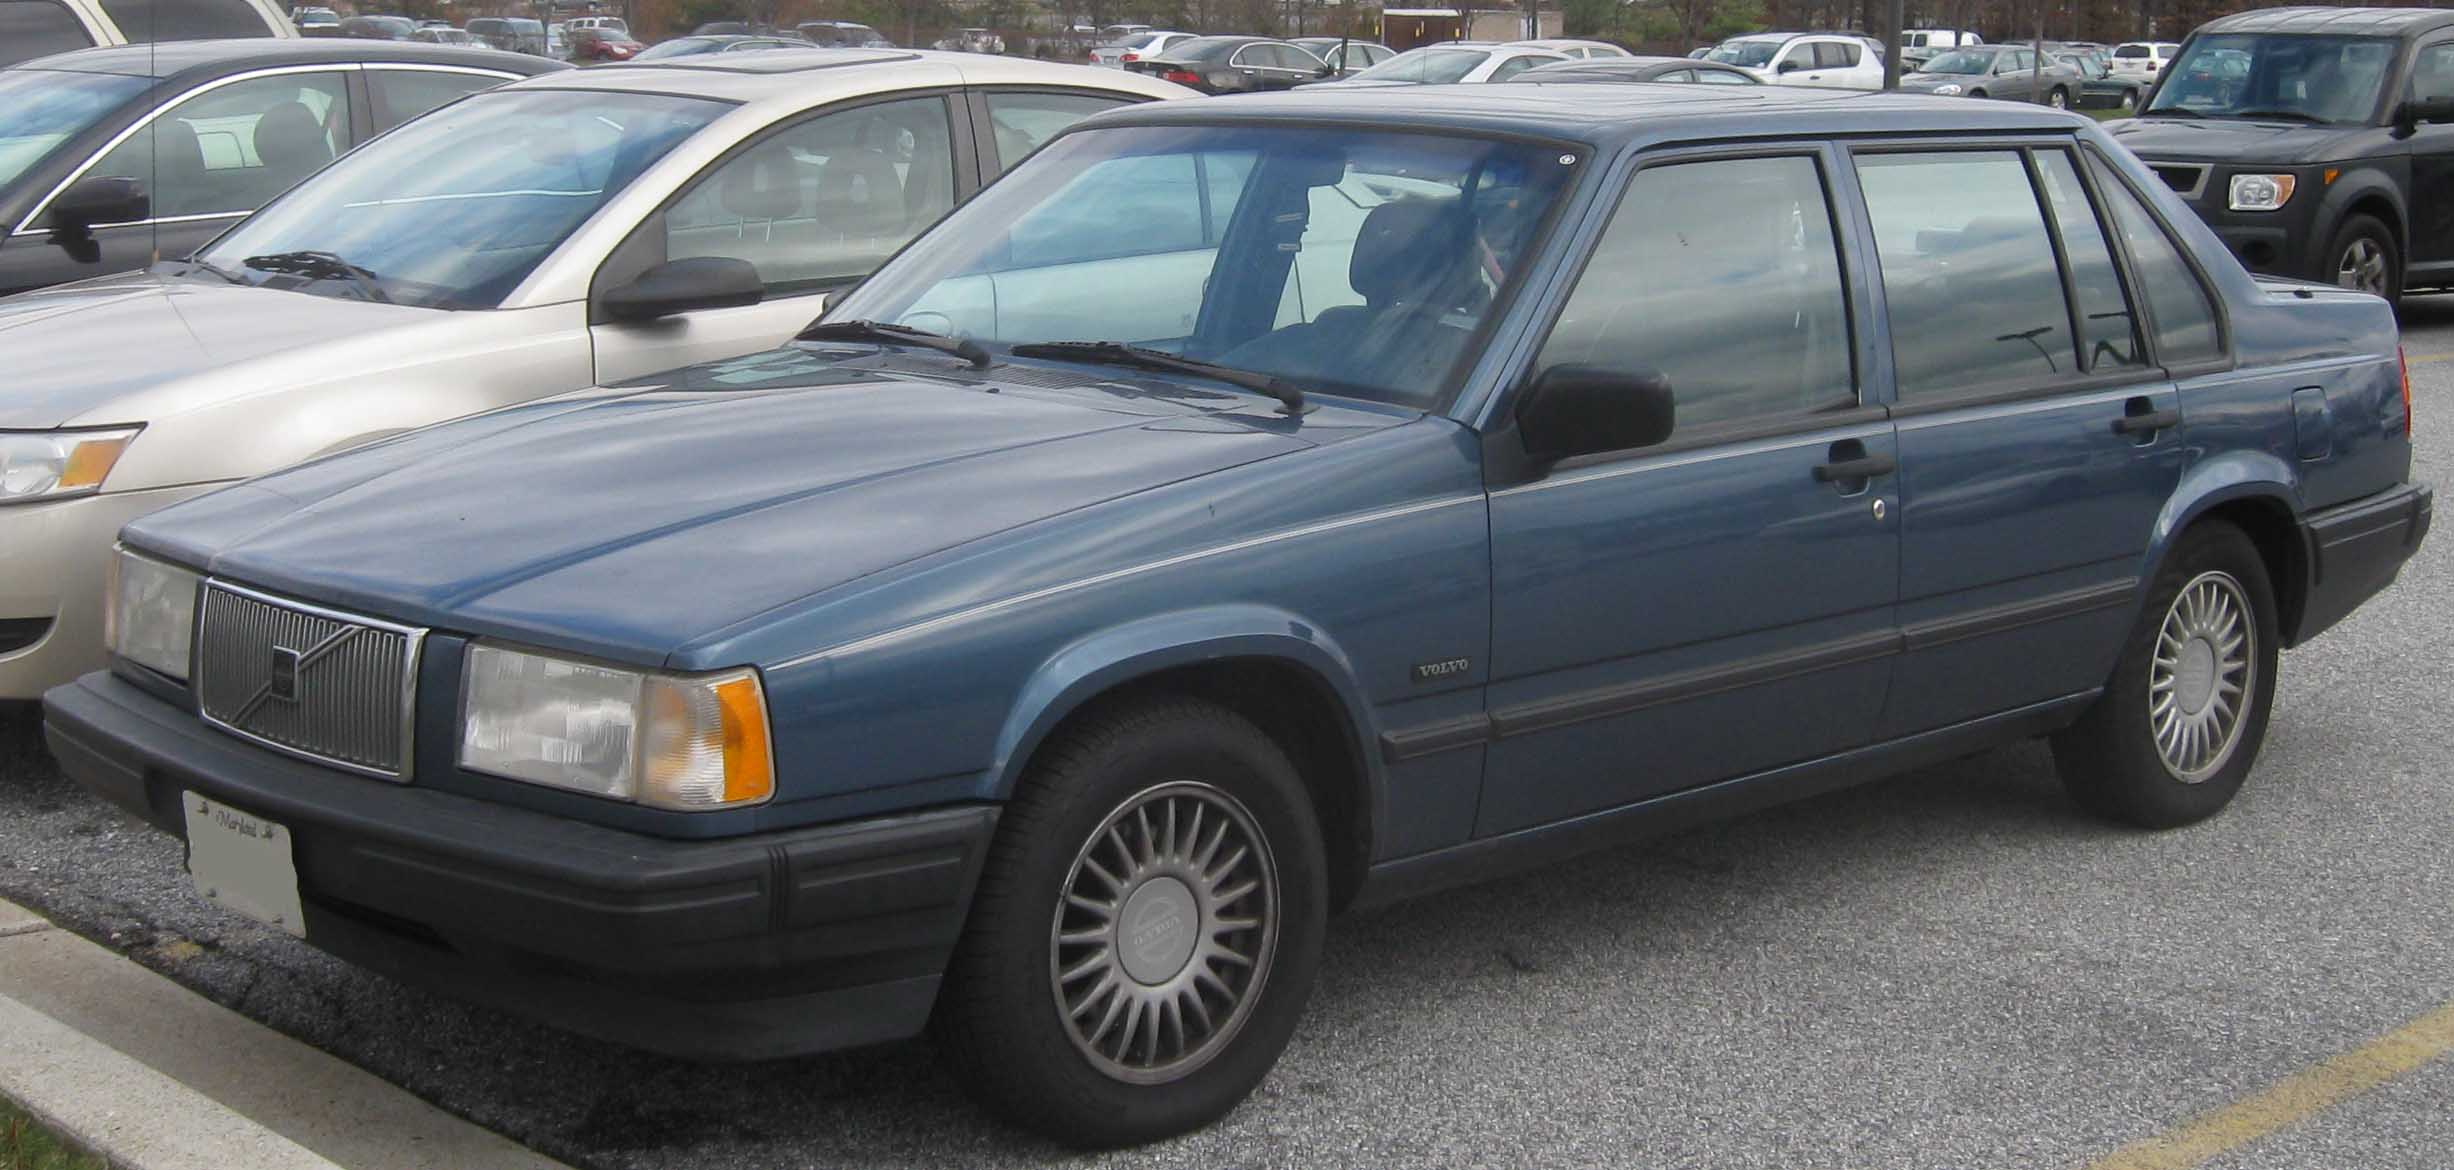 1992 Volvo 940 - Information and photos - ZombieDrive